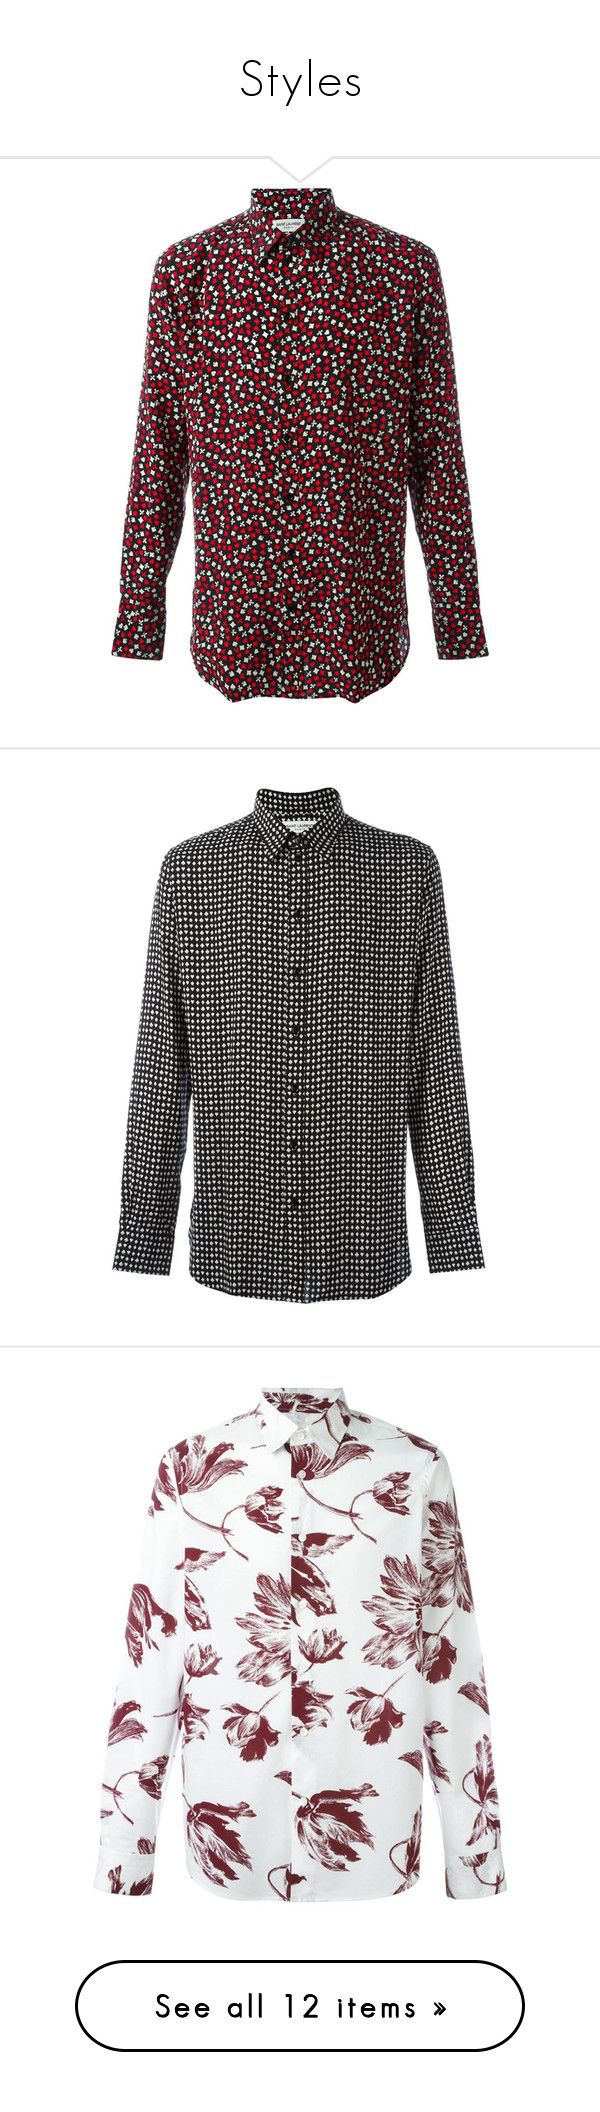 """Styles"" by silkaperez ❤ liked on Polyvore featuring men's fashion, men's clothing, men's shirts, men's casual shirts, mens silk shirts, mens extra long sleeve shirts, mens long sleeve silk shirt, mens long sleeve shirts, mens print shirts and black"